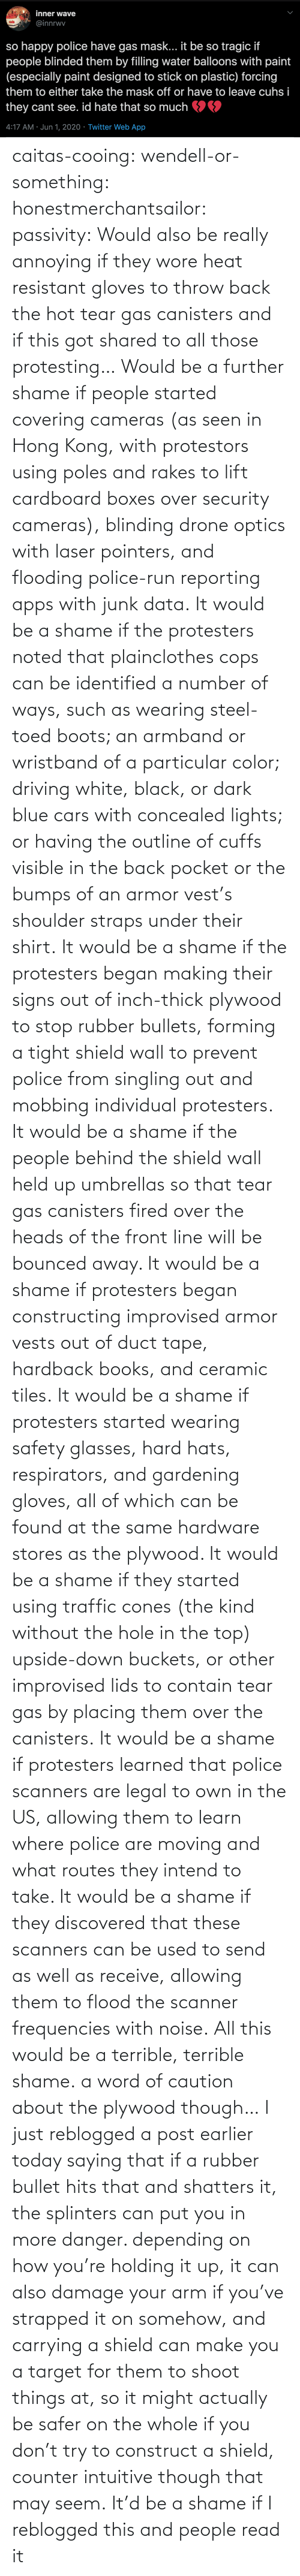 Learn: caitas-cooing:  wendell-or-something: honestmerchantsailor:  passivity: Would also be really annoying if they wore heat resistant gloves to throw back the hot tear gas canisters and if this got shared to all those protesting… Would be a further shame if people started covering cameras (as seen in Hong Kong, with protestors using poles and rakes to lift cardboard boxes over security cameras), blinding drone optics with laser pointers, and flooding police-run reporting apps with junk data. It would be a shame if the protesters noted that plainclothes cops can be identified a number of ways, such as wearing steel-toed boots; an armband or wristband of a particular color; driving white, black, or dark blue cars with concealed lights; or having the outline of cuffs visible in the back pocket or the bumps of an armor vest's shoulder straps under their shirt. It would be a shame if the protesters began making their signs out of inch-thick plywood to stop rubber bullets, forming a tight shield wall to prevent police from singling out and mobbing individual protesters. It would be a shame if the people behind the shield wall held up umbrellas so that tear gas canisters fired over the heads of the front line will be bounced away. It would be a shame if protesters began constructing improvised armor vests out of duct tape, hardback books, and ceramic tiles. It would be a shame if protesters started wearing safety glasses, hard hats, respirators, and gardening gloves, all of which can be found at the same hardware stores as the plywood. It would be a shame if they started using traffic cones (the kind without the hole in the top) upside-down buckets, or other improvised lids to contain tear gas by placing them over the canisters. It would be a shame if protesters learned that police scanners are legal to own in the US, allowing them to learn where police are moving and what routes they intend to take. It would be a shame if they discovered that these scanners can be used to send as well as receive, allowing them to flood the scanner frequencies with noise. All this would be a terrible, terrible shame.    a word of caution about the plywood though… I just reblogged a post earlier today saying that if a rubber bullet hits that and shatters it, the splinters can put you in more danger. depending on how you're holding it up, it can also damage your arm if you've strapped it on somehow, and carrying a shield can make you a target for them to shoot things at, so it might actually be safer on the whole if you don't try to construct a shield, counter intuitive though that may seem.    It'd be a shame if I reblogged this and people read it